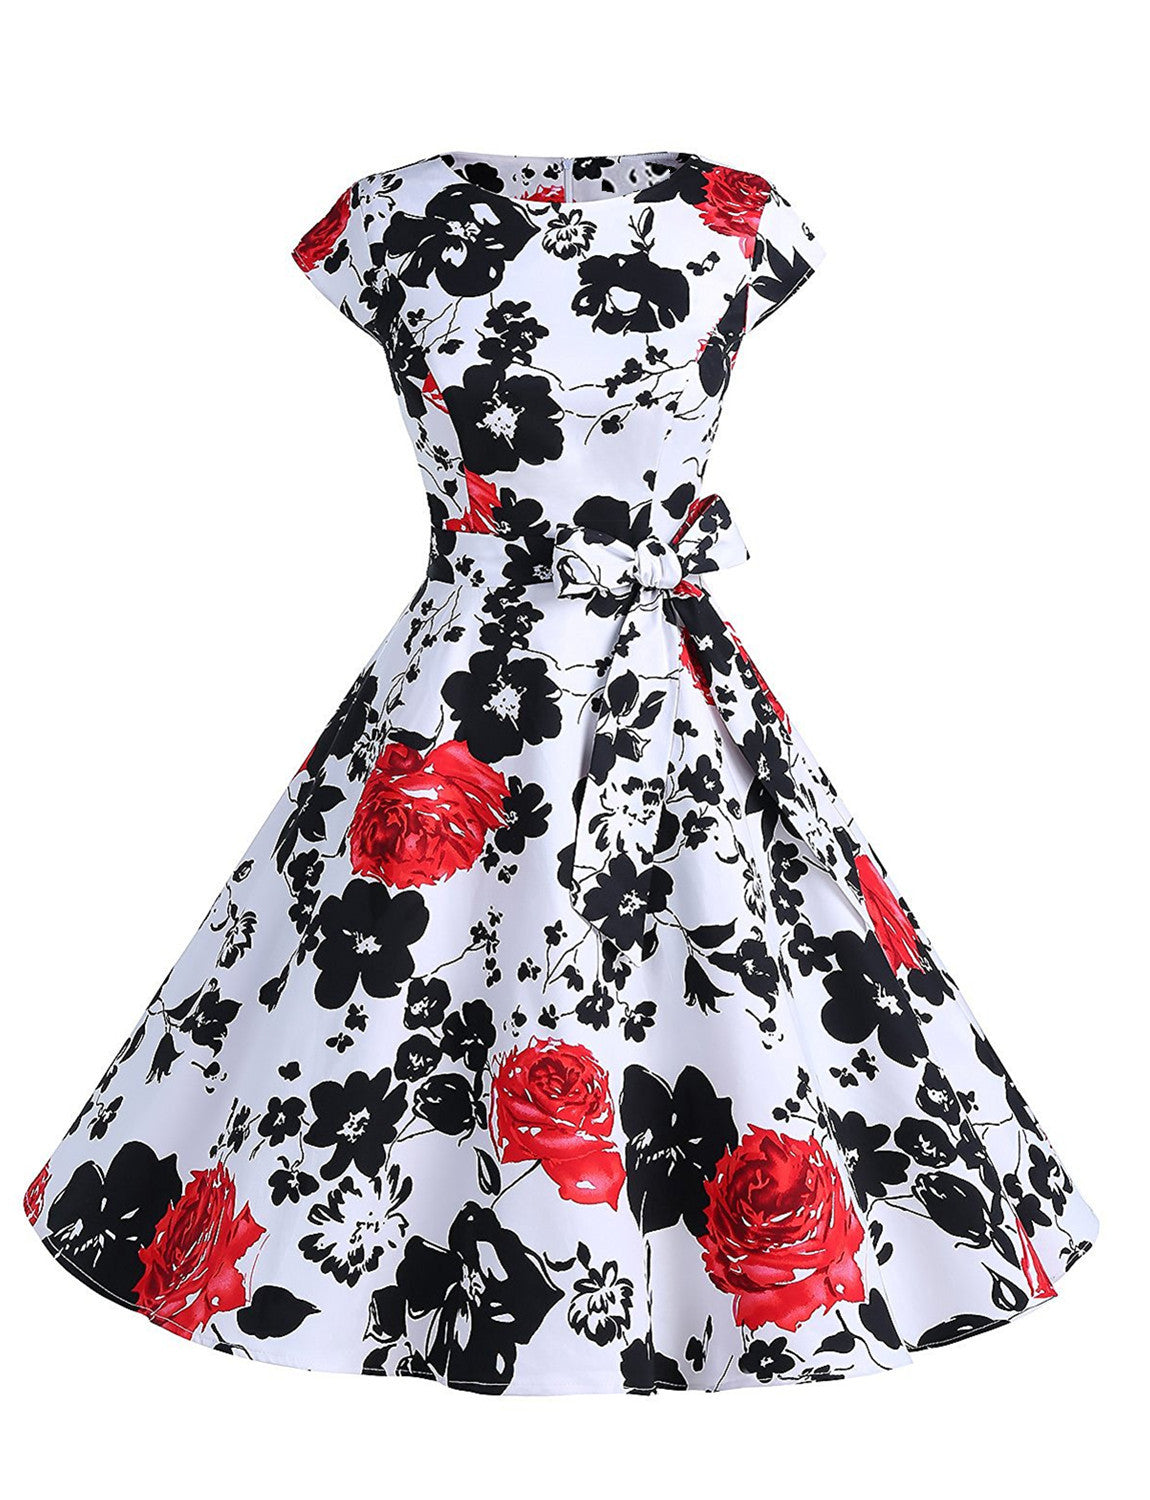 Vintage Pin-up Style Multiple Floral Print A-Line Summer Sundress with Bow